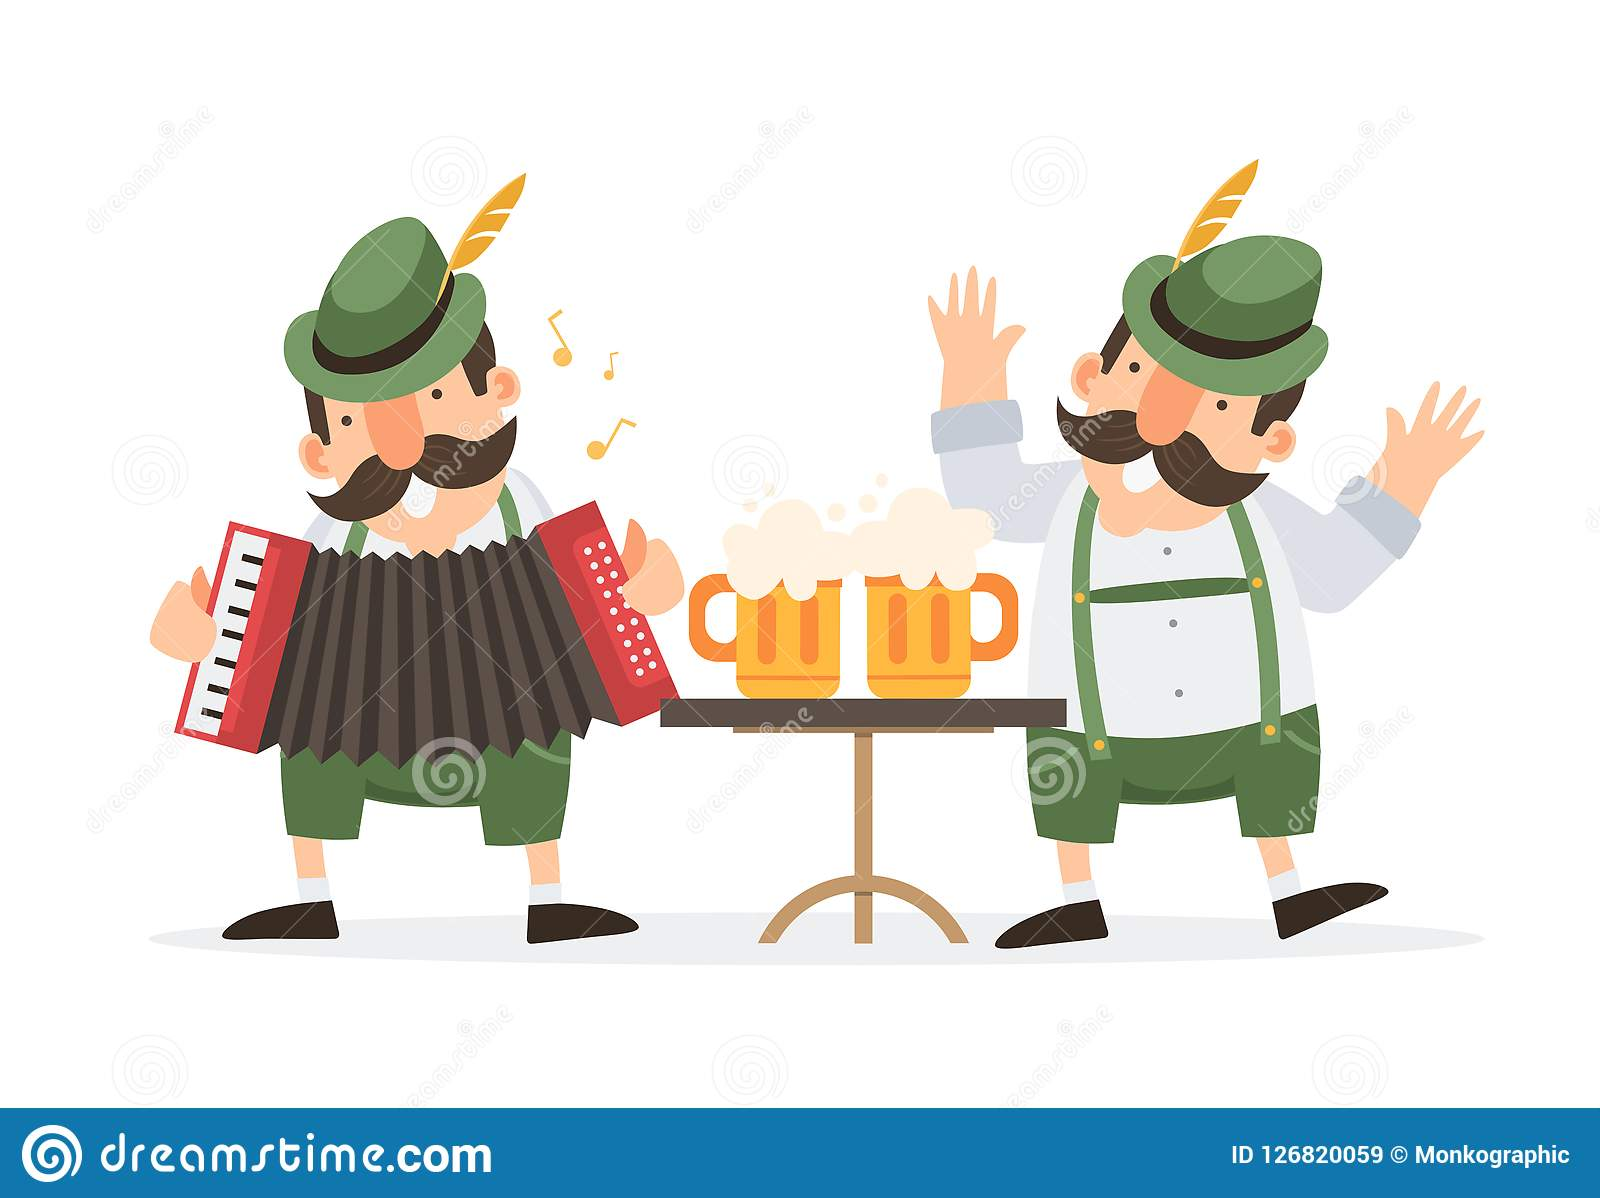 Oktoberfest. Two funny cartoon mens in traditional Bavarian costume with beer mugs celebrate and have fun at Oktoberfest beer fest